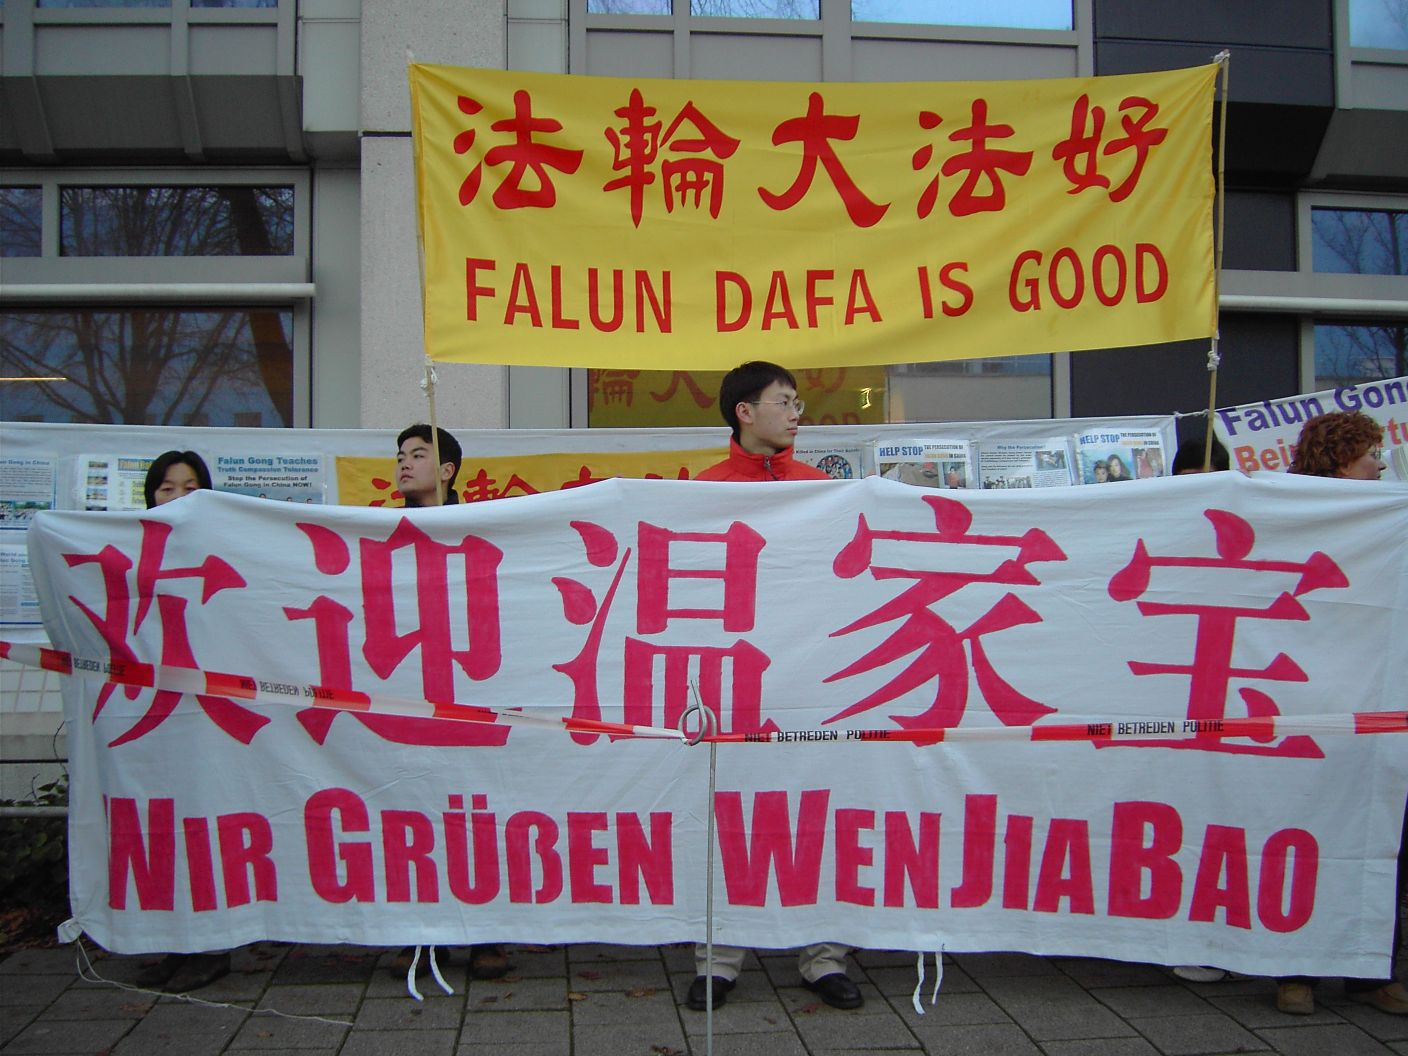 falun gong and the callous act in china Falun gong: cult or culture show transcript  the communist party in china has branded falun gong an evil cult with a political agenda to destabilise chinese  but for the government, it was an outrageous act of defiance chris bullock: the falun gong practitioners were protesting about criticisms in a section of the chinese press there.